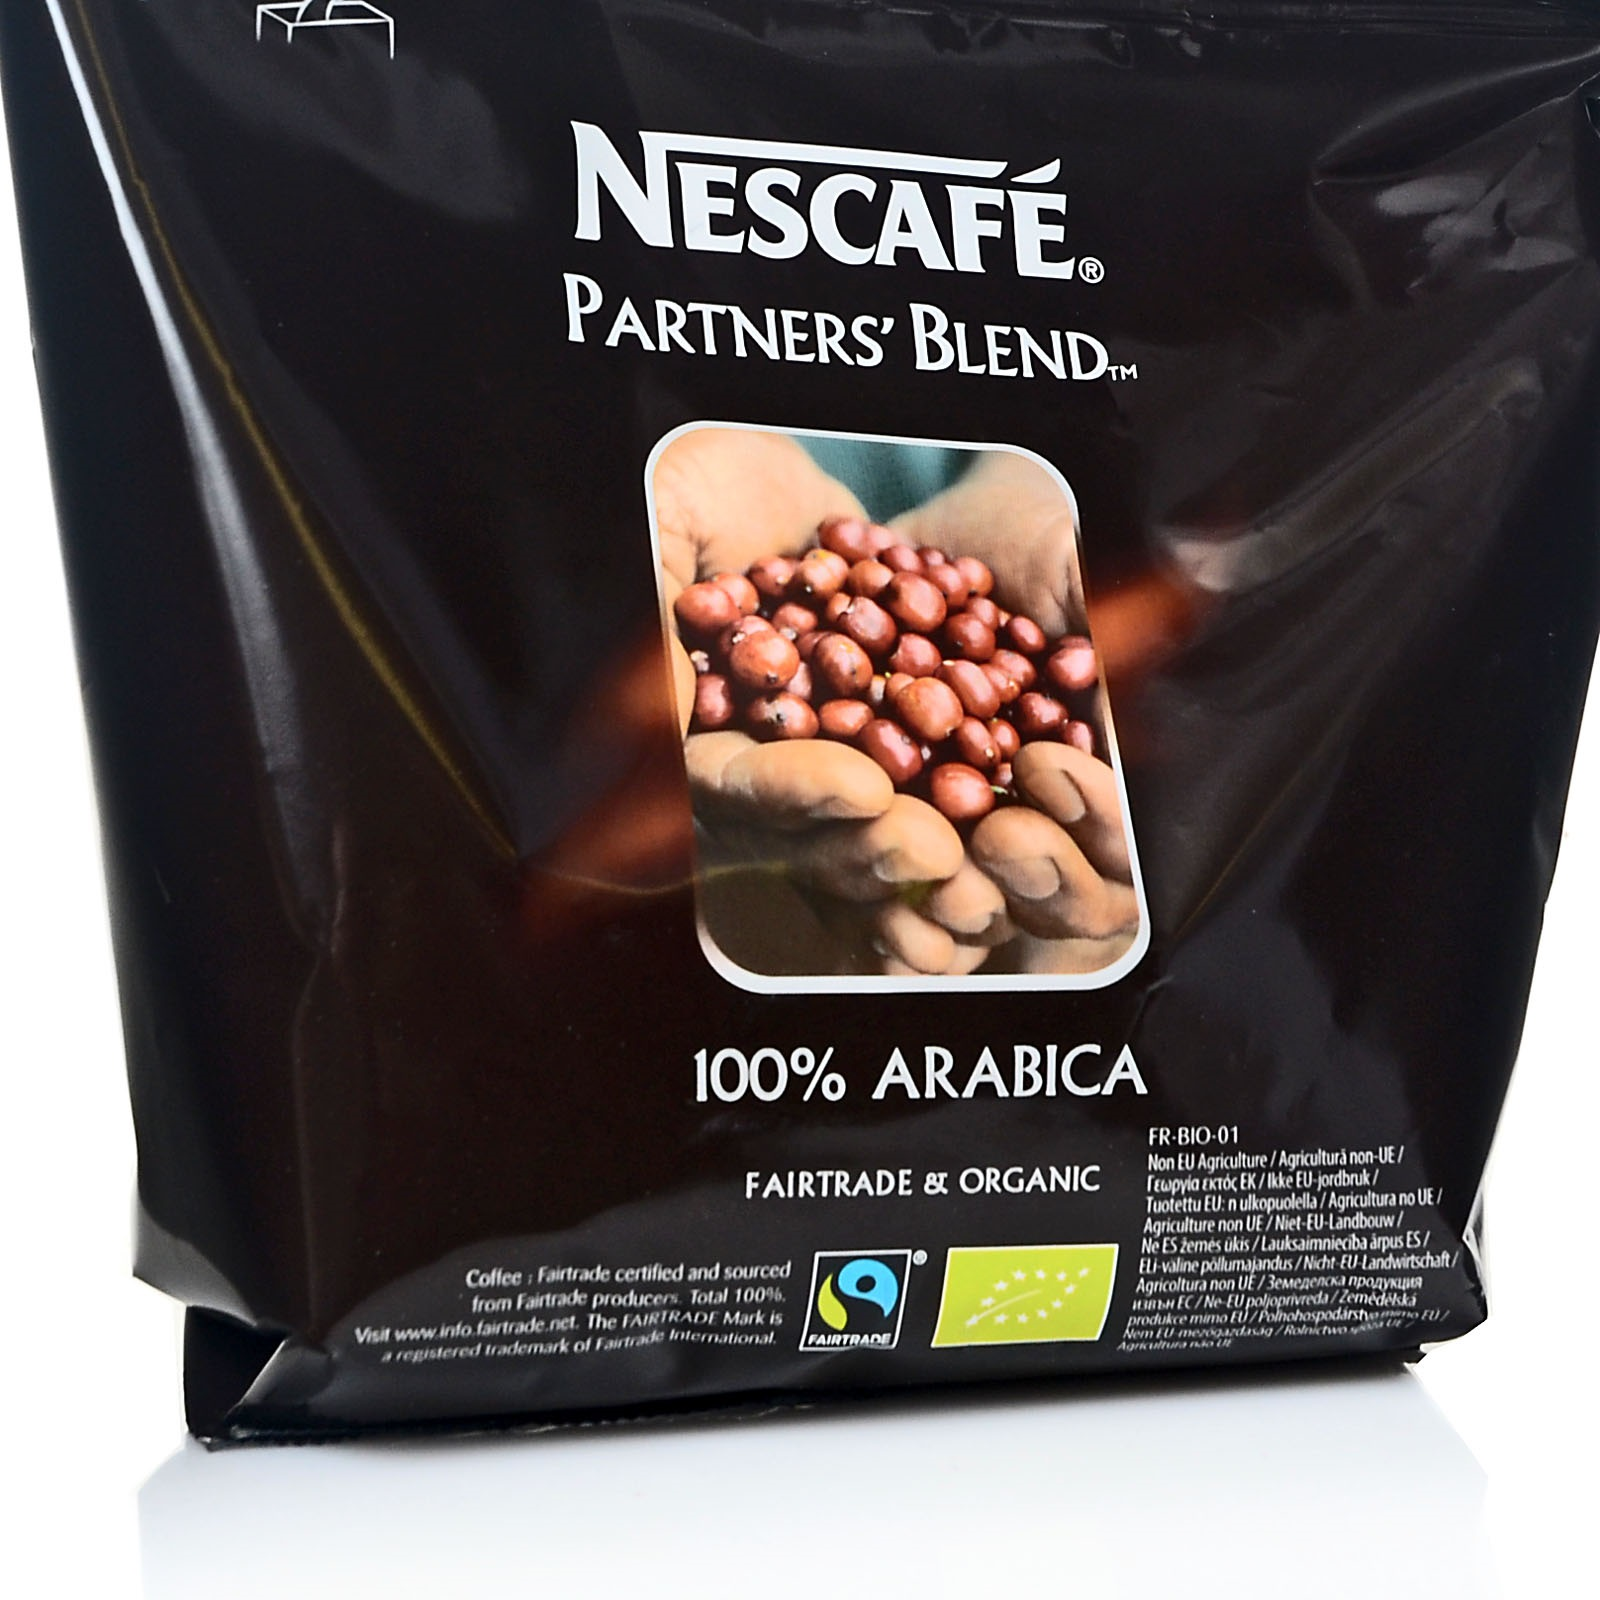 Nestlé Nescafé Partners`Blend 12 x 250g Instant-Kaffee Fairtrade